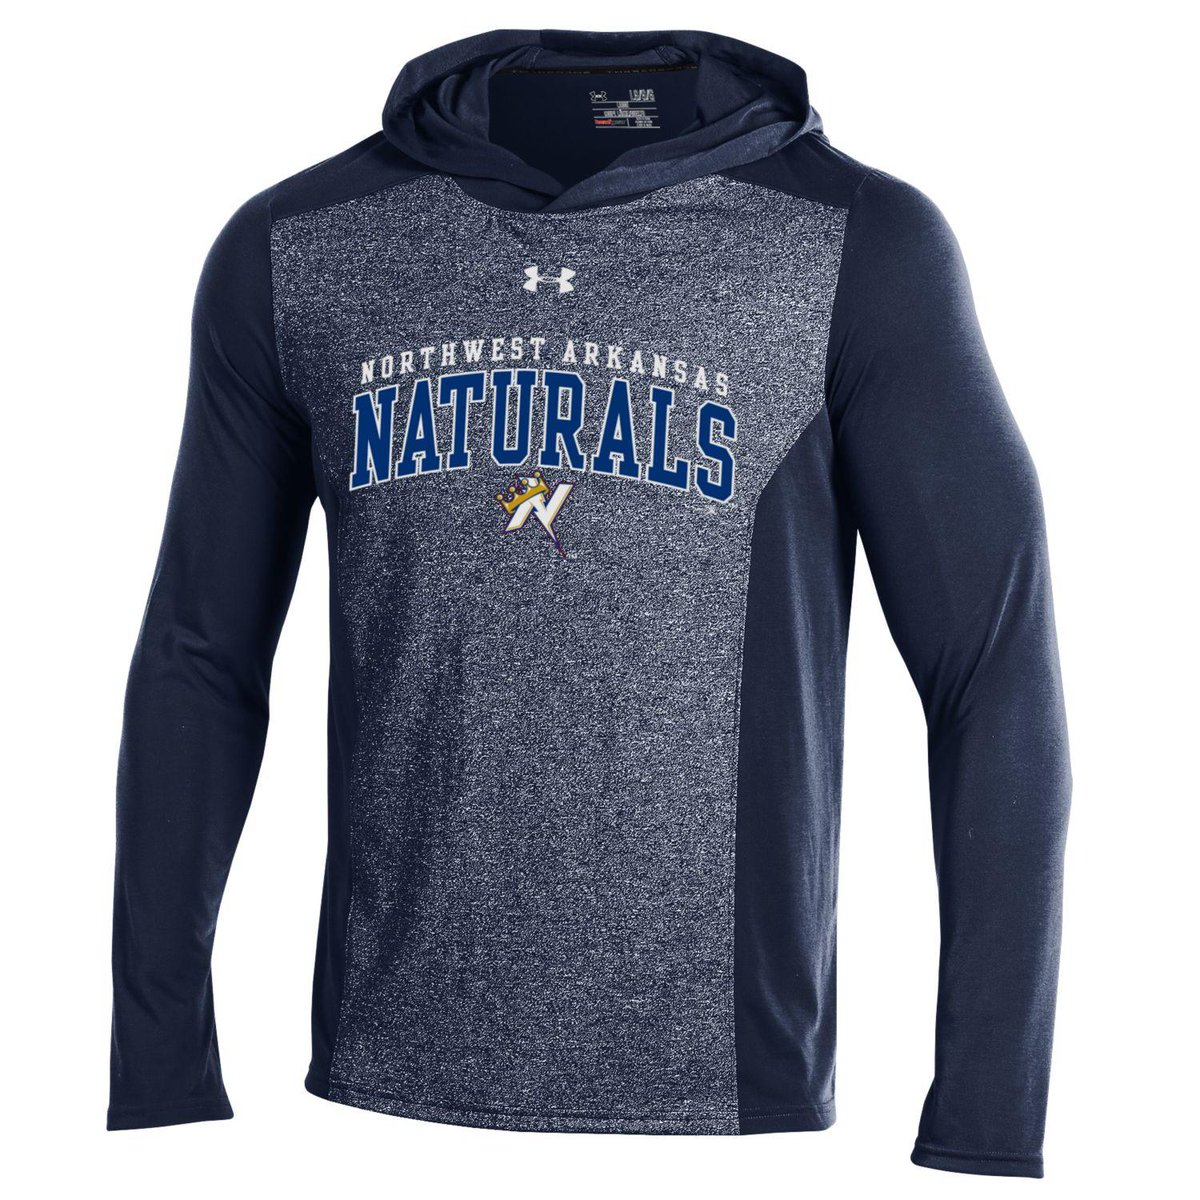 test Twitter Media - Here is a look at some more of the Under Armour gear found at the #NWANaturals Team Store. Shop 👉 https://t.co/sXPUokvKy6 #NaturalPastime #ArvestBallpark #TeamStore https://t.co/iv6CO4yyUk